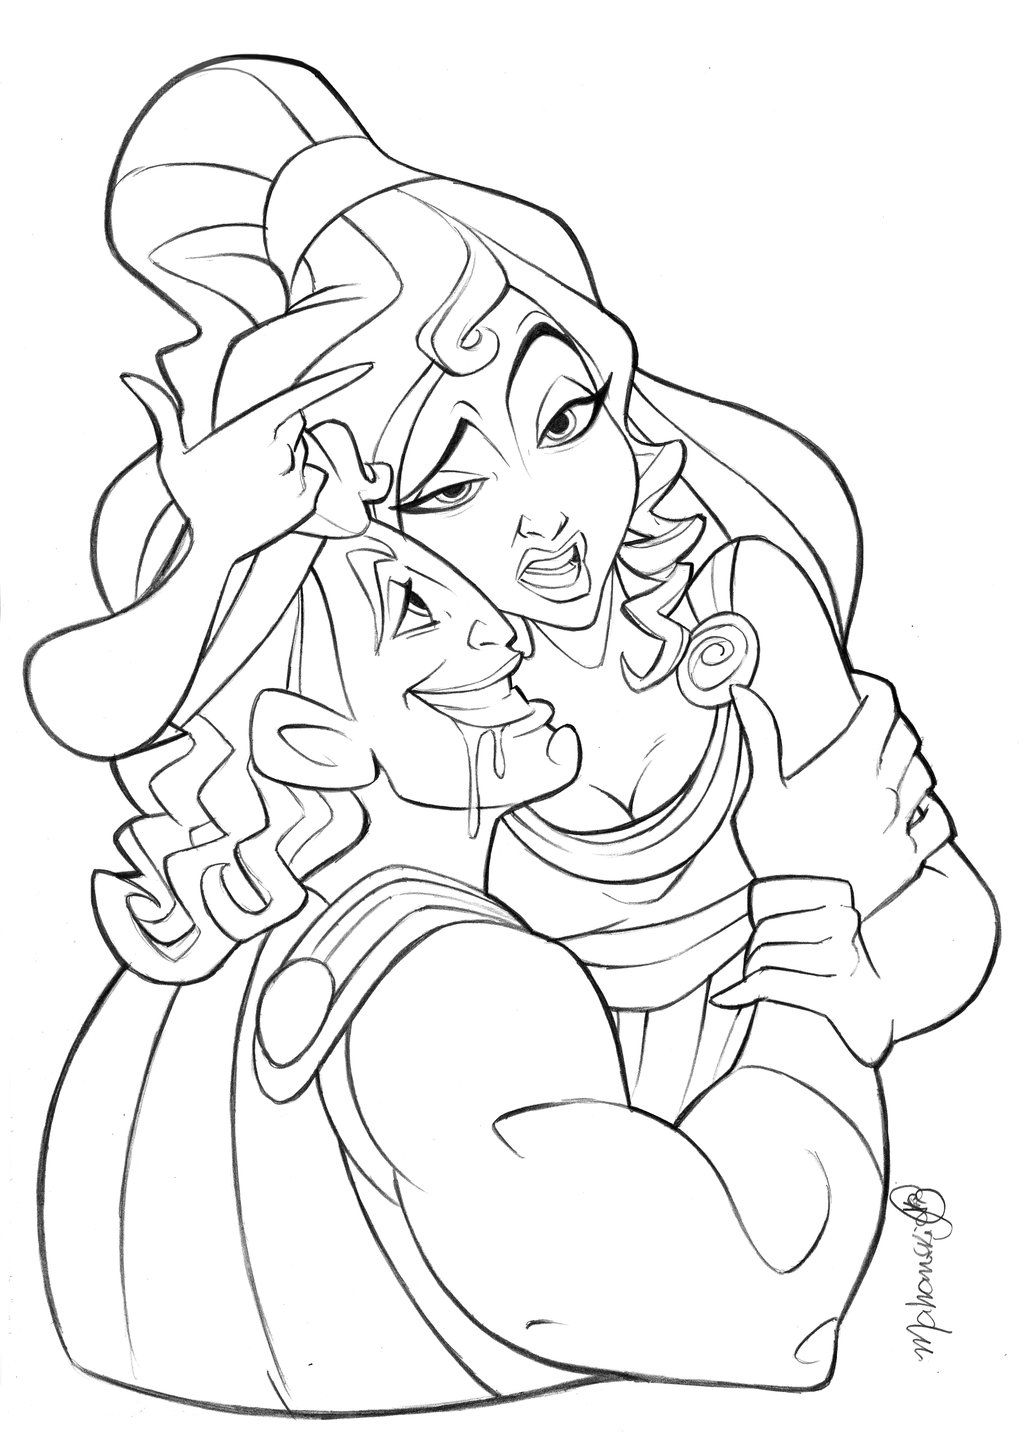 finest best images about anderson mahanski on pinterest hercules with hercules coloring page